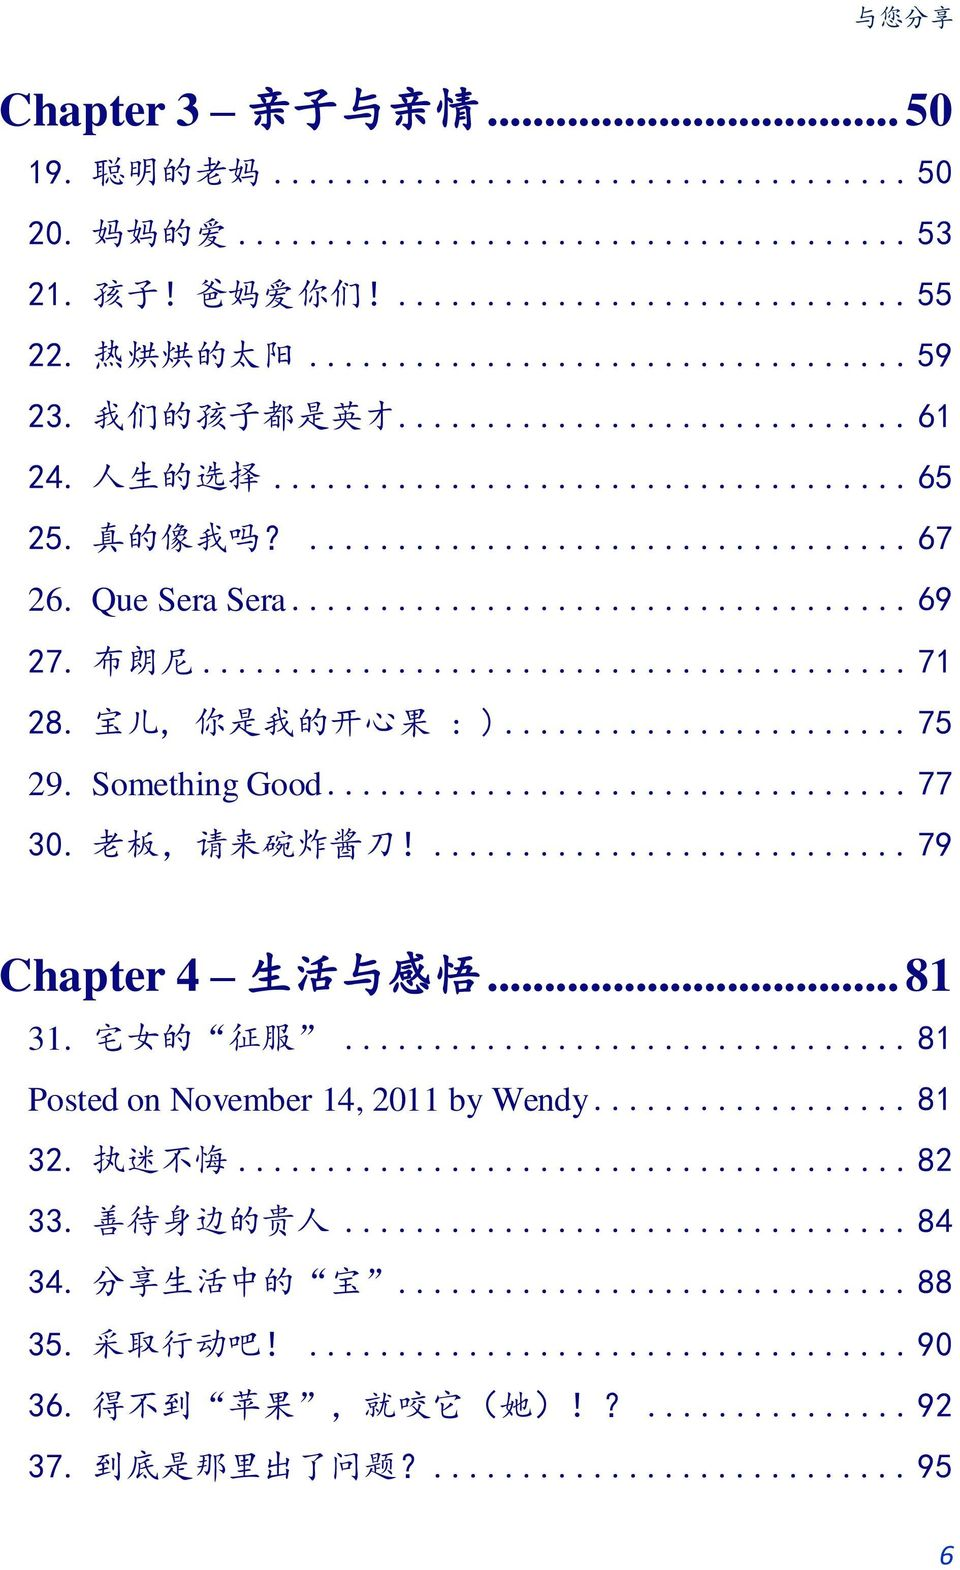 Something Good... 77 30. 老 板, 请 来 碗 炸 酱 刀!... 79 Chapter 4 生 活 与 感 悟... 81 31. 宅 女 的 征 服... 81 Posted on November 14, 2011 by Wendy.